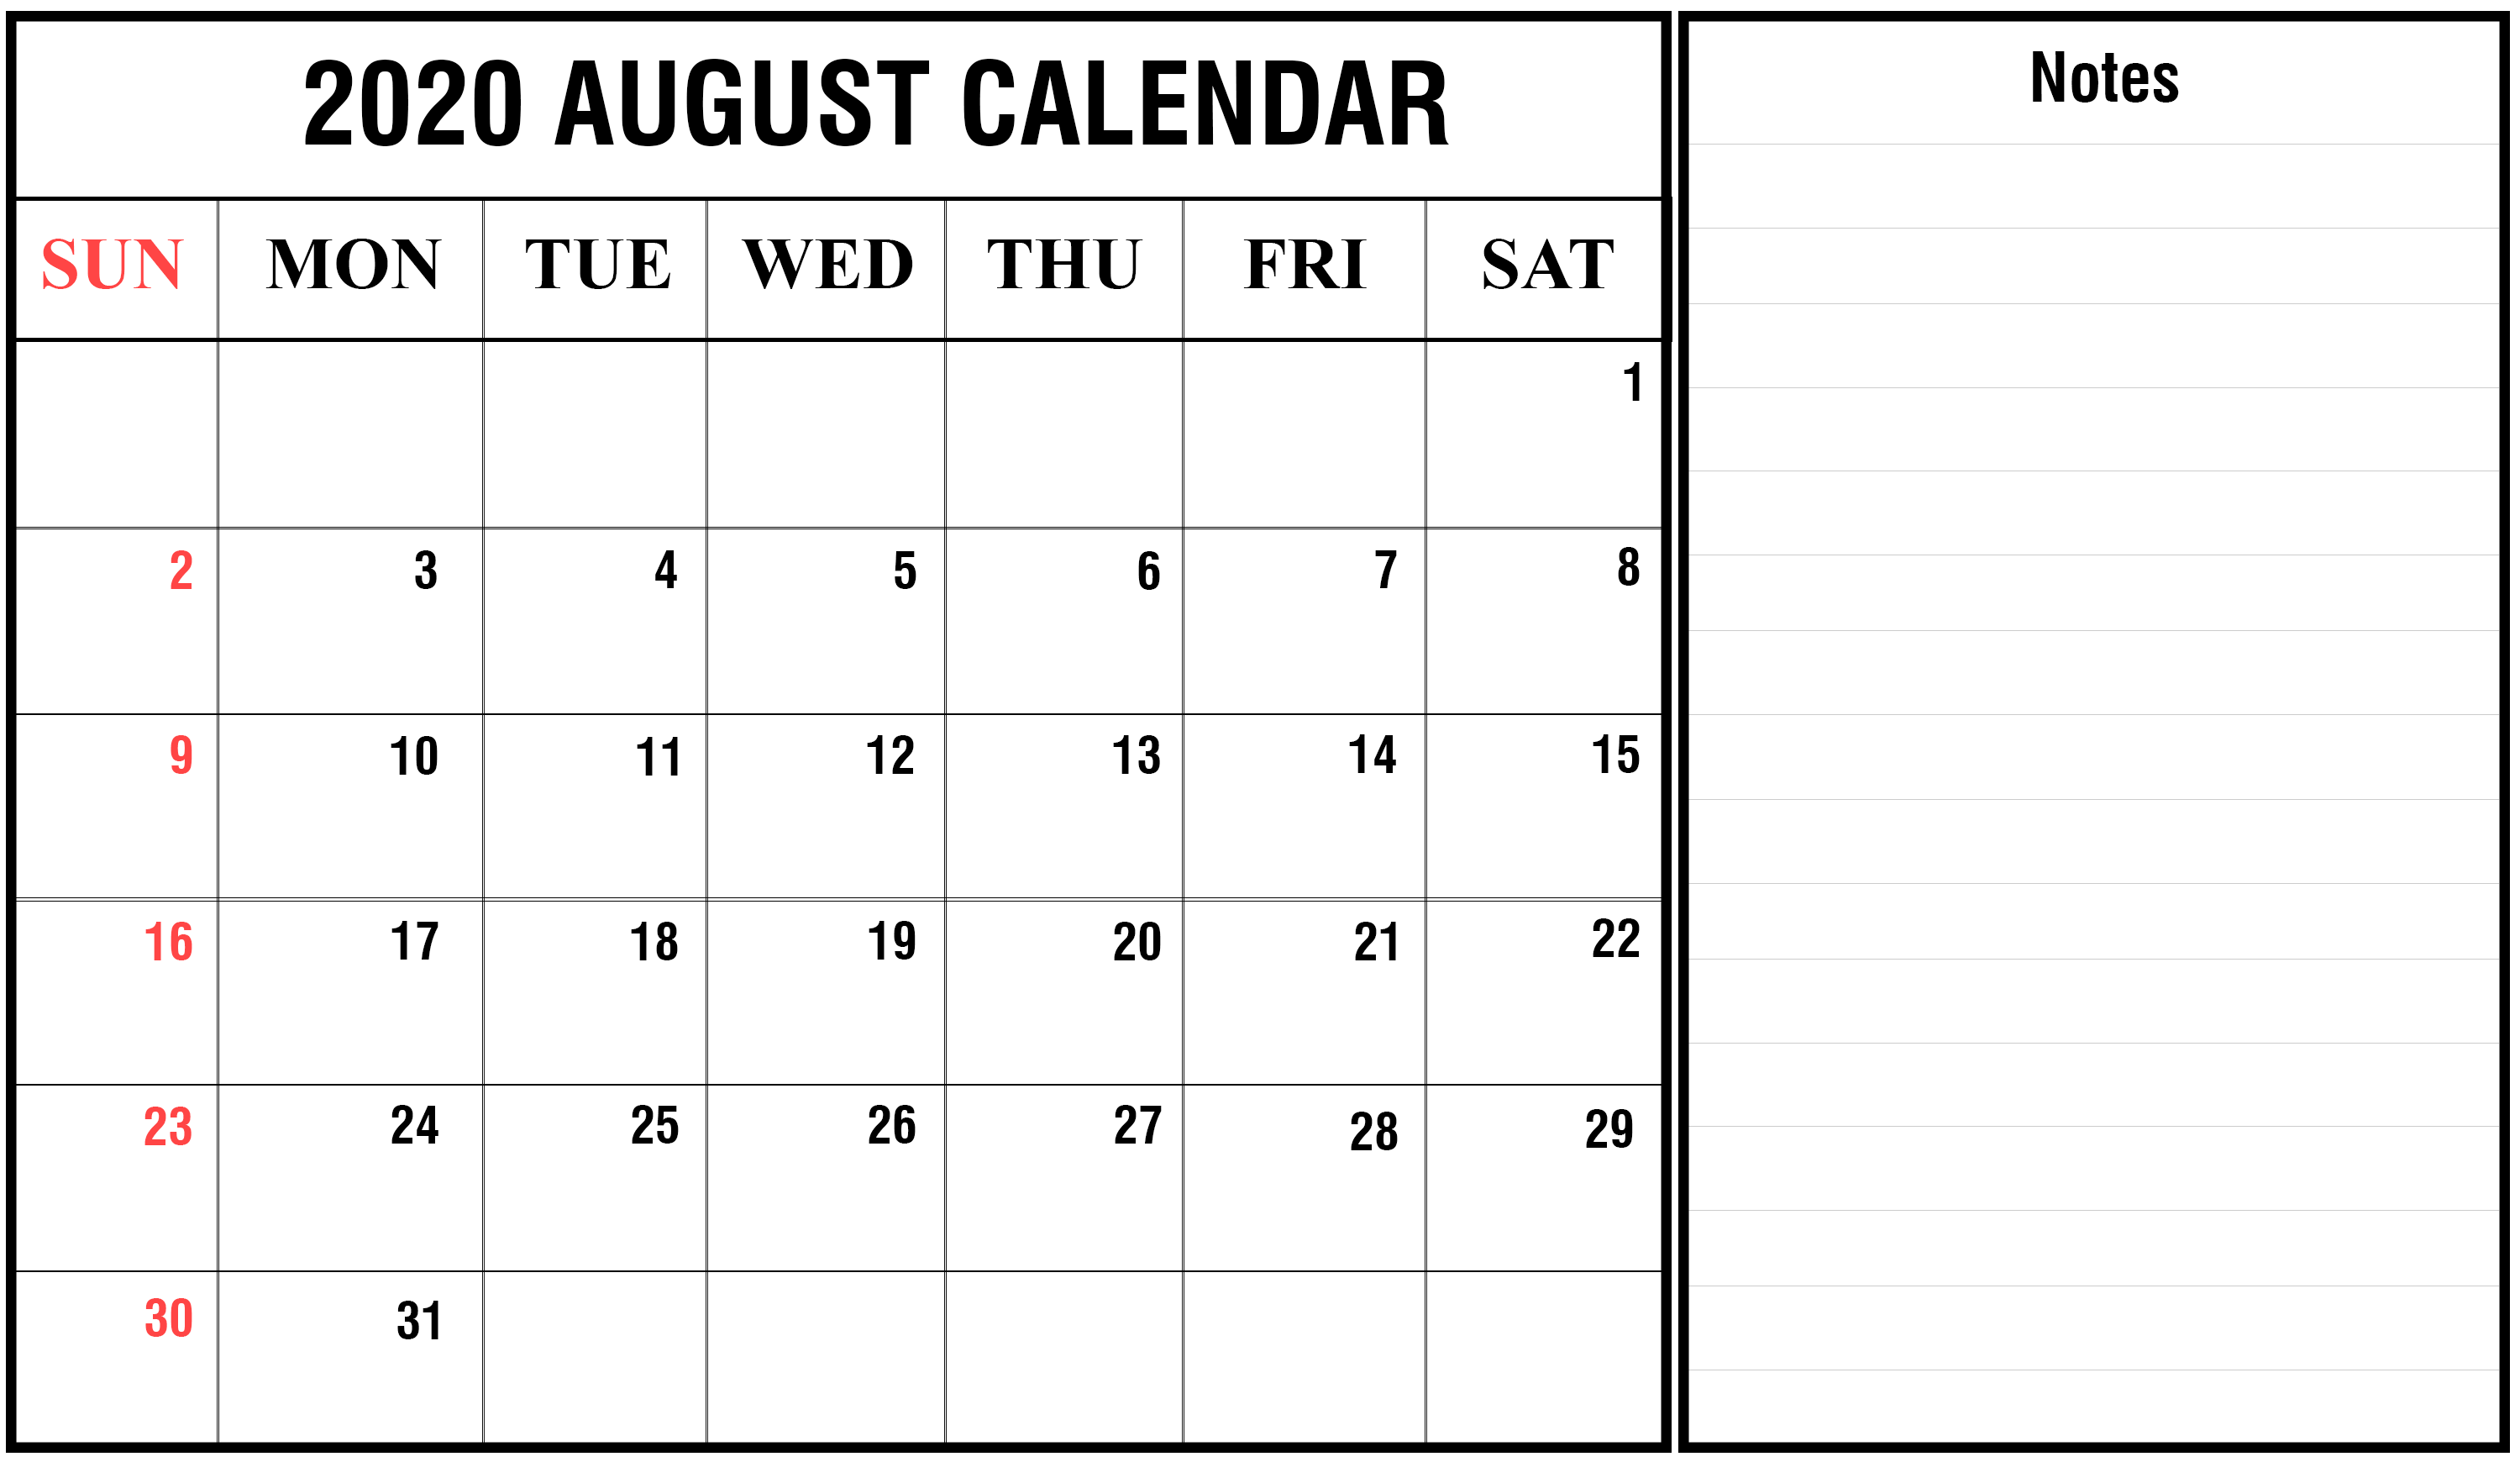 Editable August 2020 Calendar with Notes